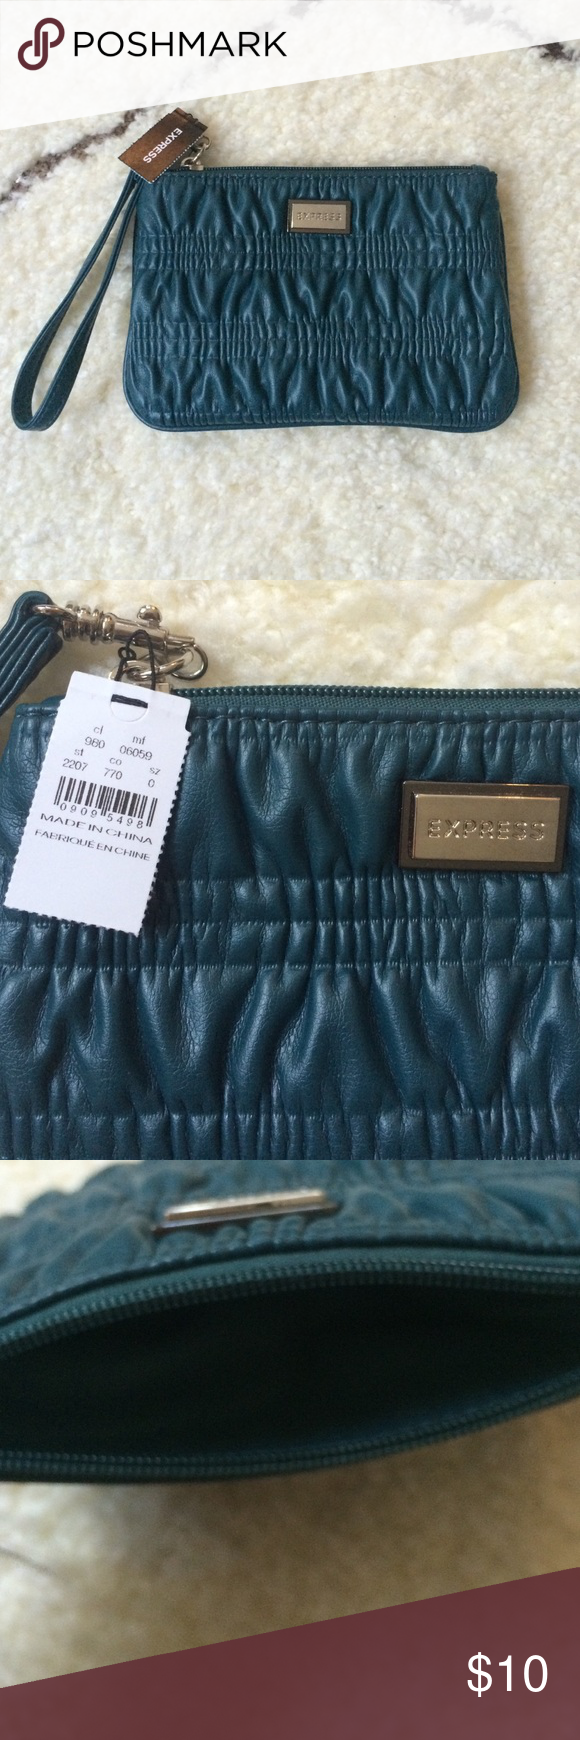 """NWT Teal Express Wristlet Never used with tags still attached. Size: 7.25""""w x 5""""h.  Brand: Express. Please take a look at my other listings to see if you're interested in bundling this item to save on shipping. I also offer 10% off bundles! Express Bags Clutches & Wristlets"""